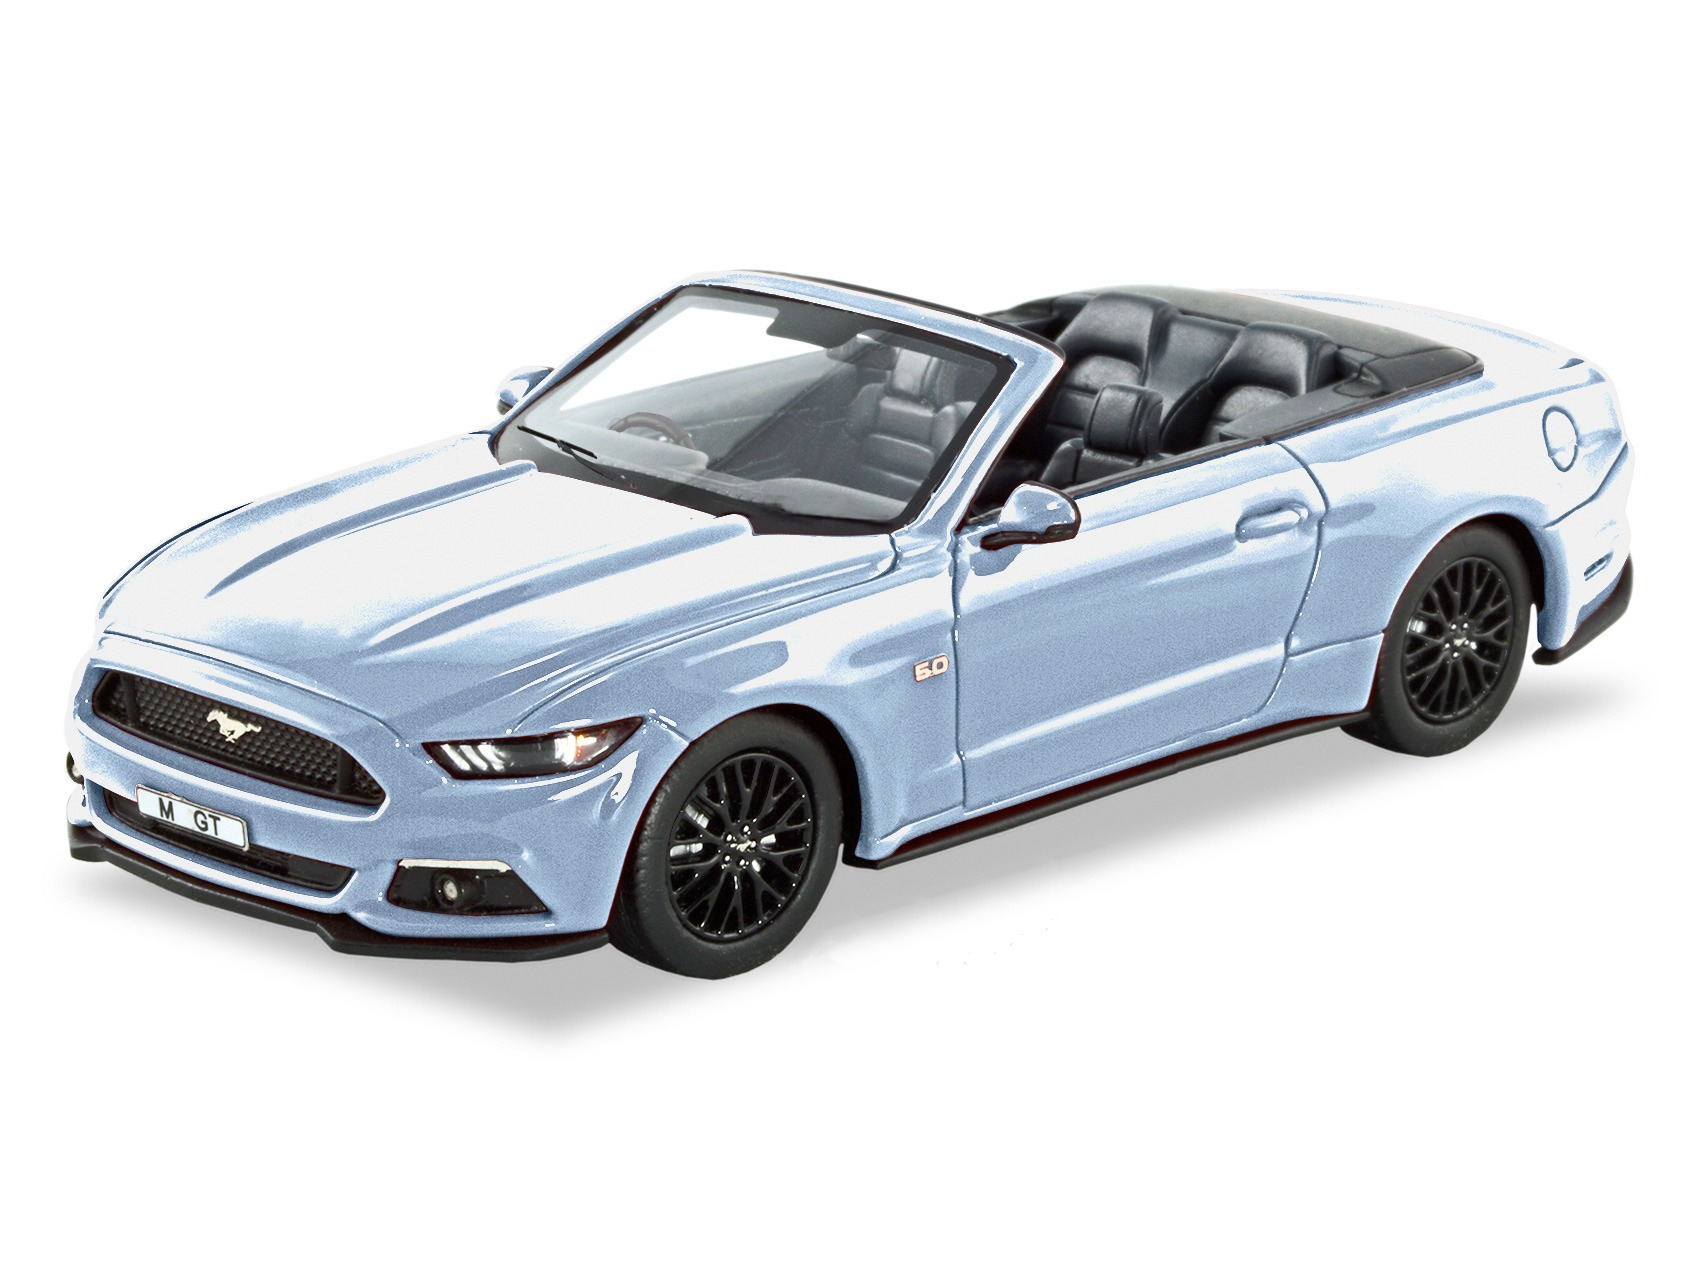 2016 Ford Mustang GT Convertible – Ingot Silver